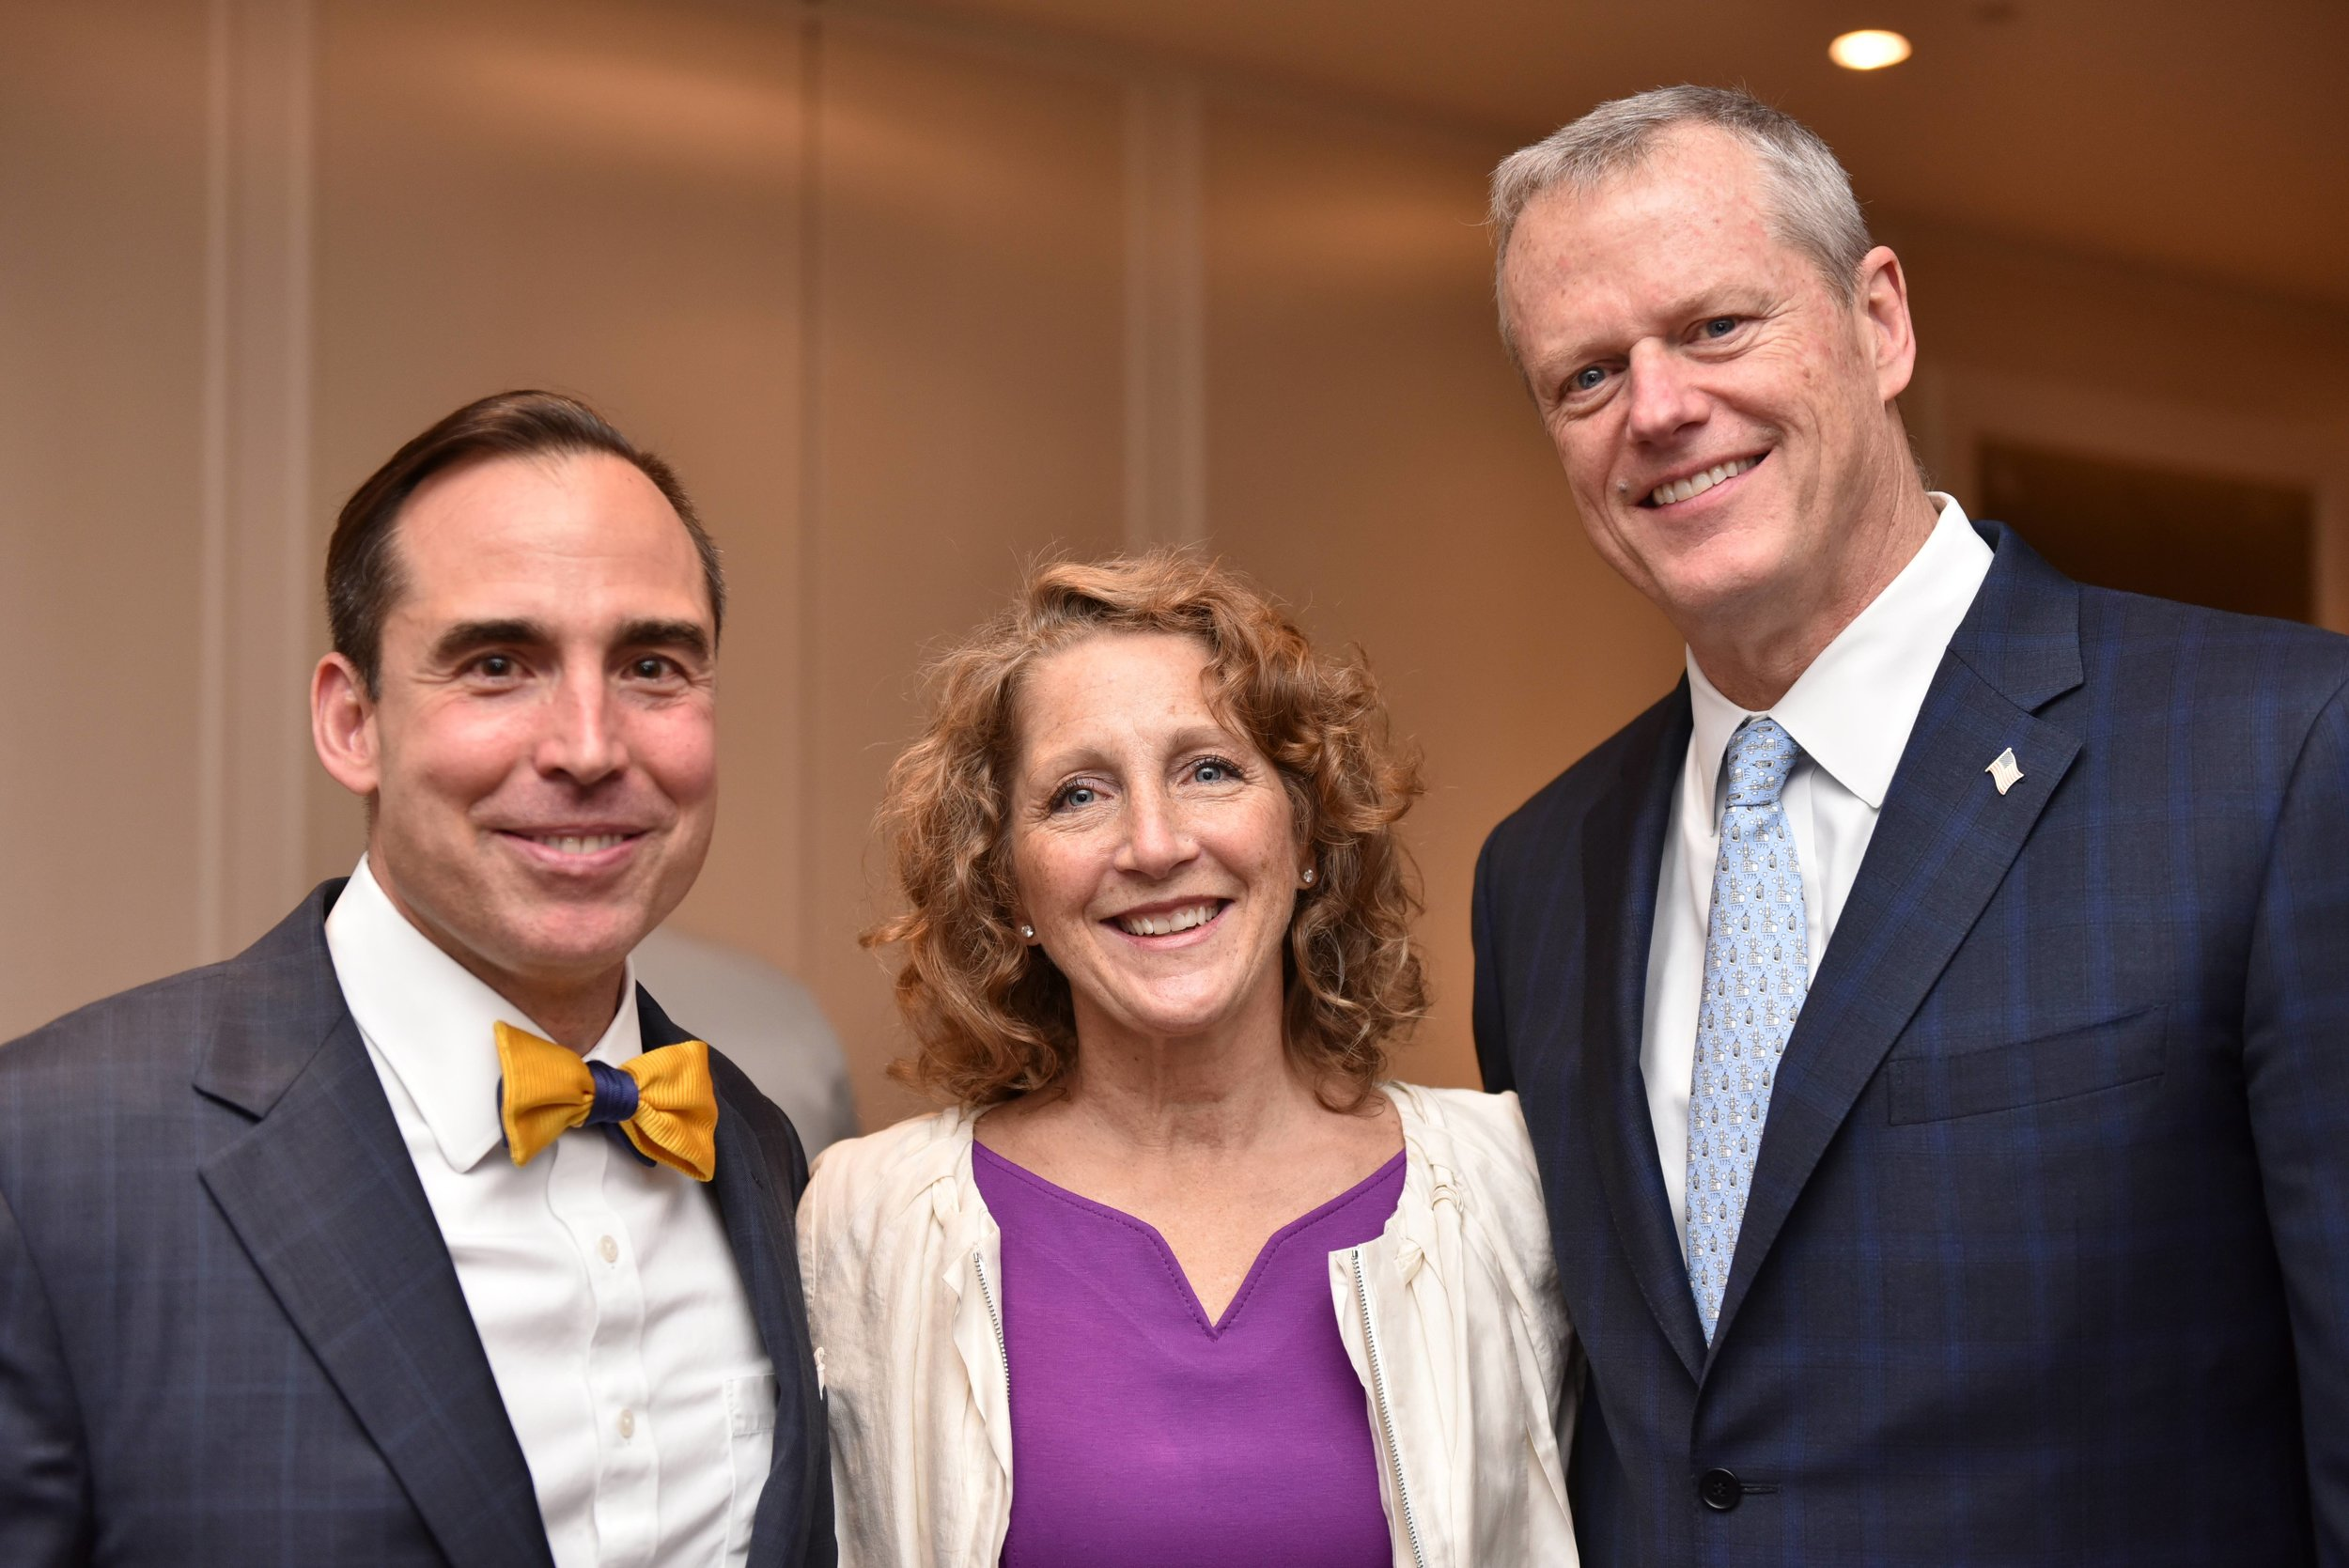 Rev. Finley with First Lady Lauren Baker and Governor Charlie Baker.